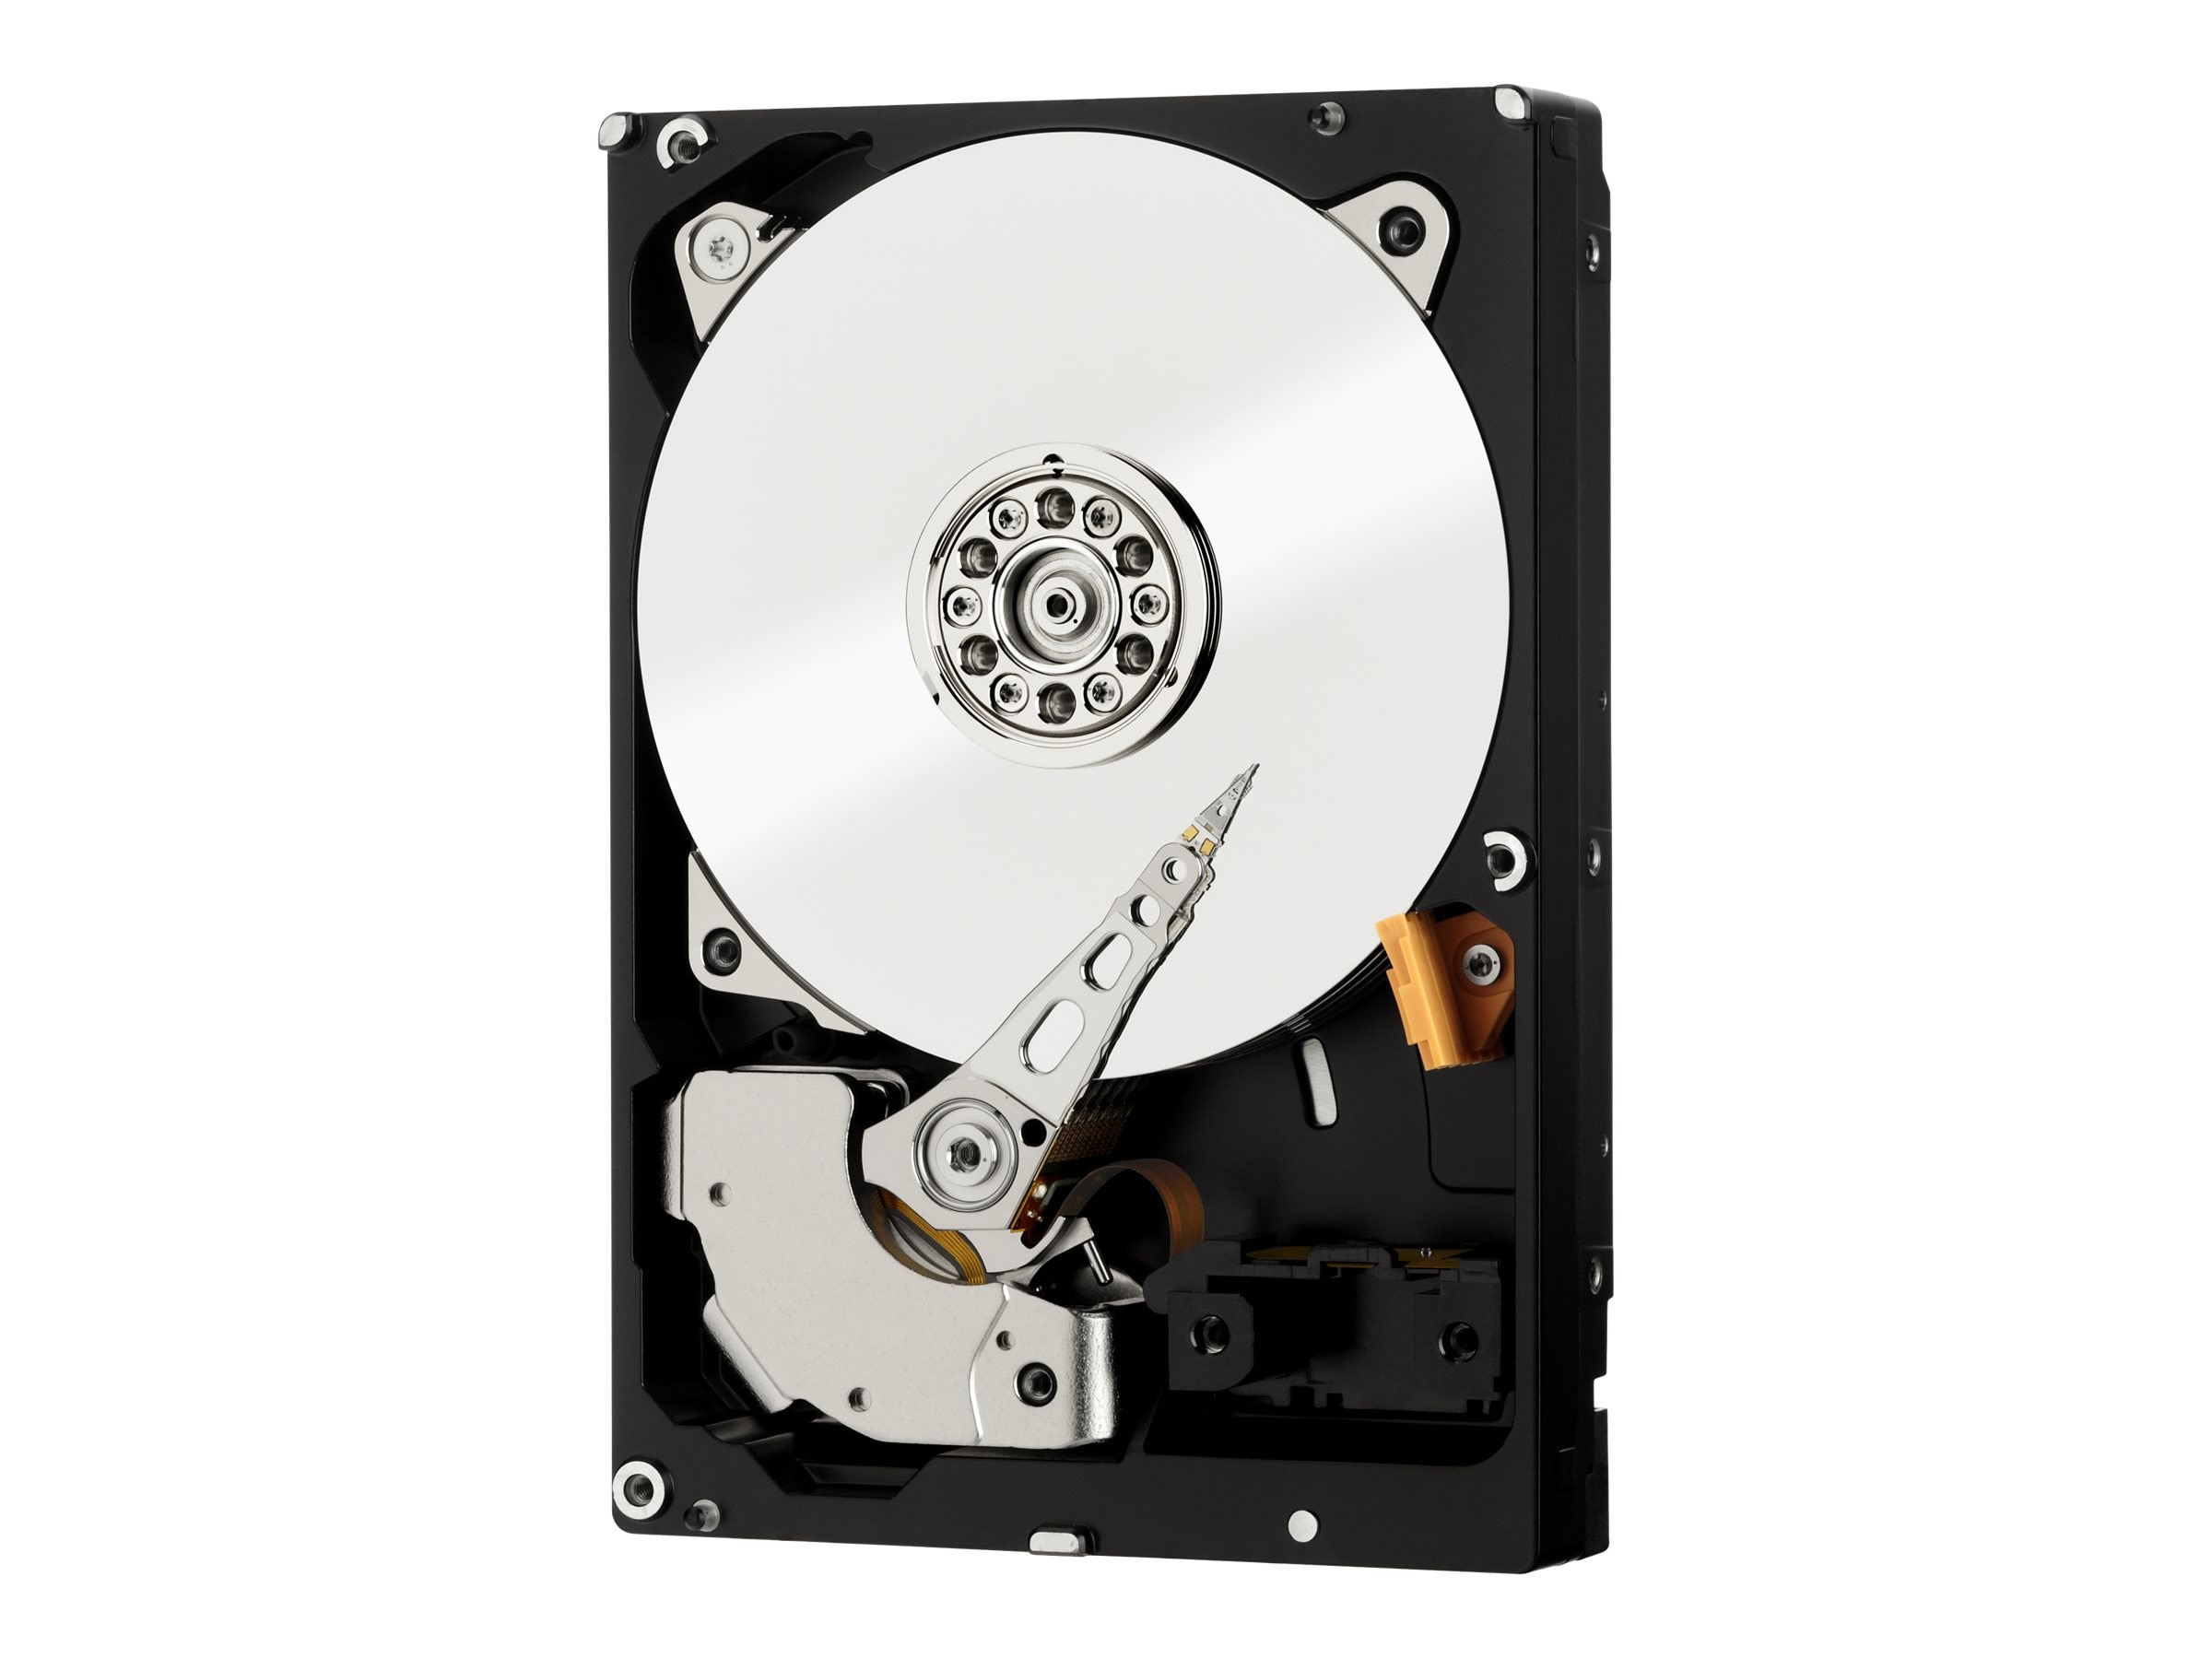 Open Box WD 1TB WD SE SATA 6Gb s Data Center Hard Drive - 128MB Cache, WD1002F9YZ